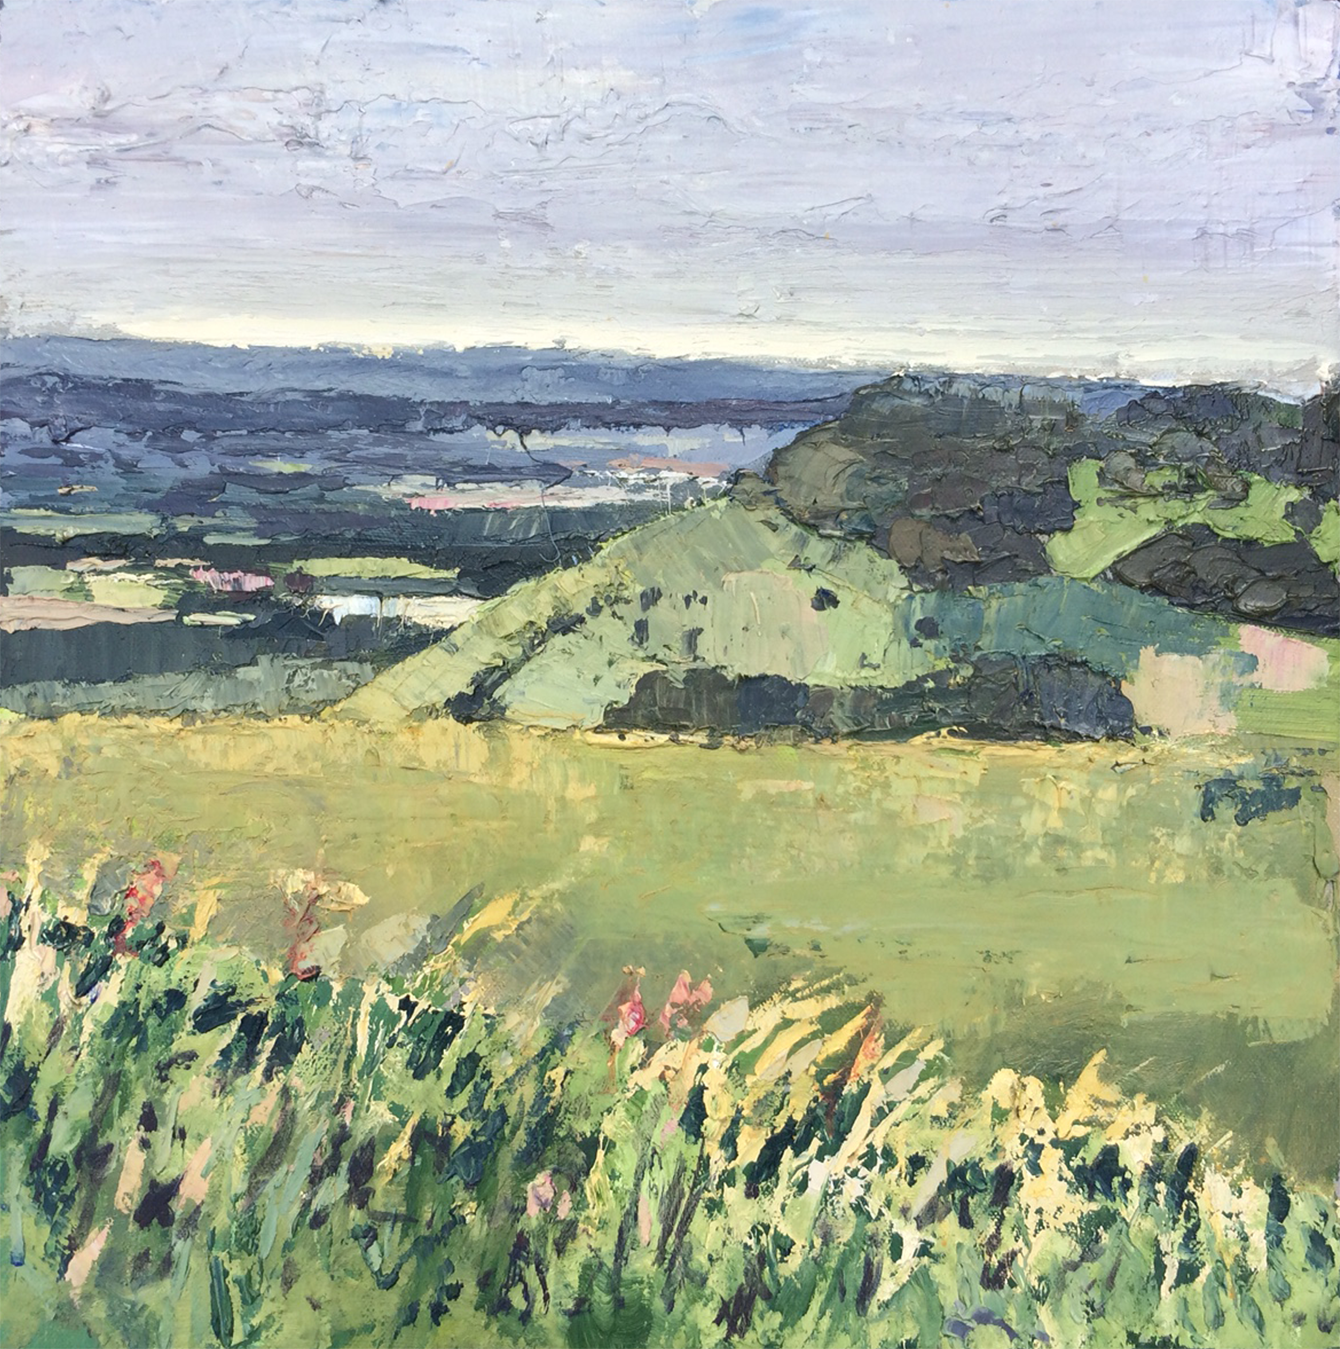 Artist: Andrew Roberts  Title: Devils Dyke Looking North West  Size: 40 x 40 cm  Medium: Oil on canvas  Price: £1600